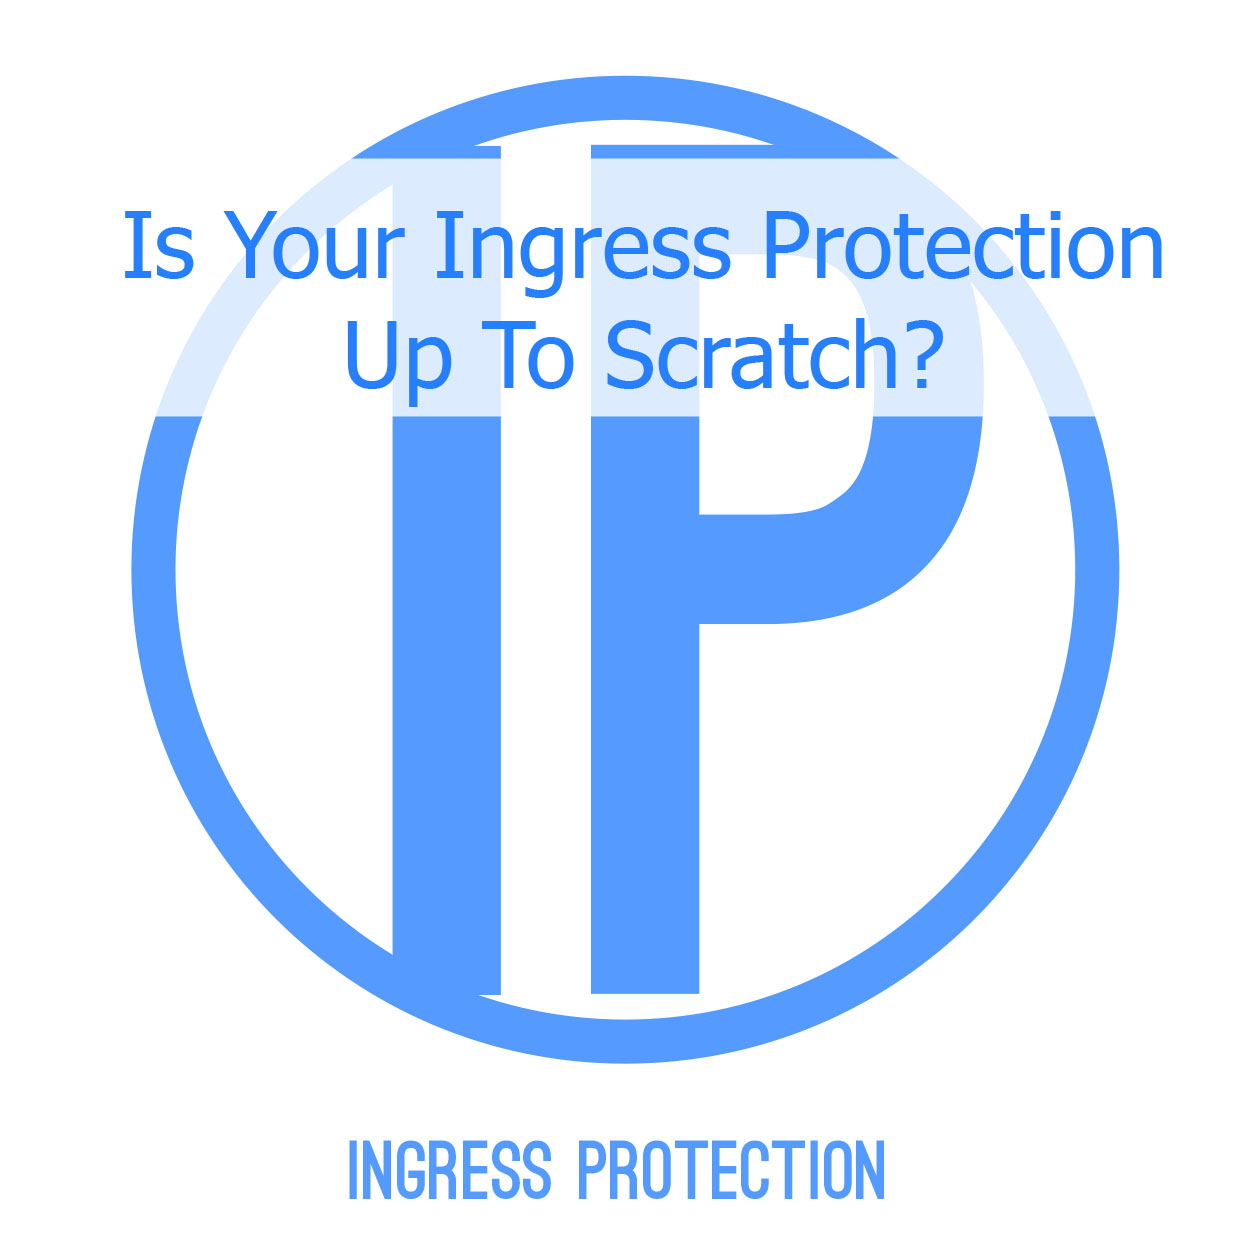 Is Your IP up to Scratch?